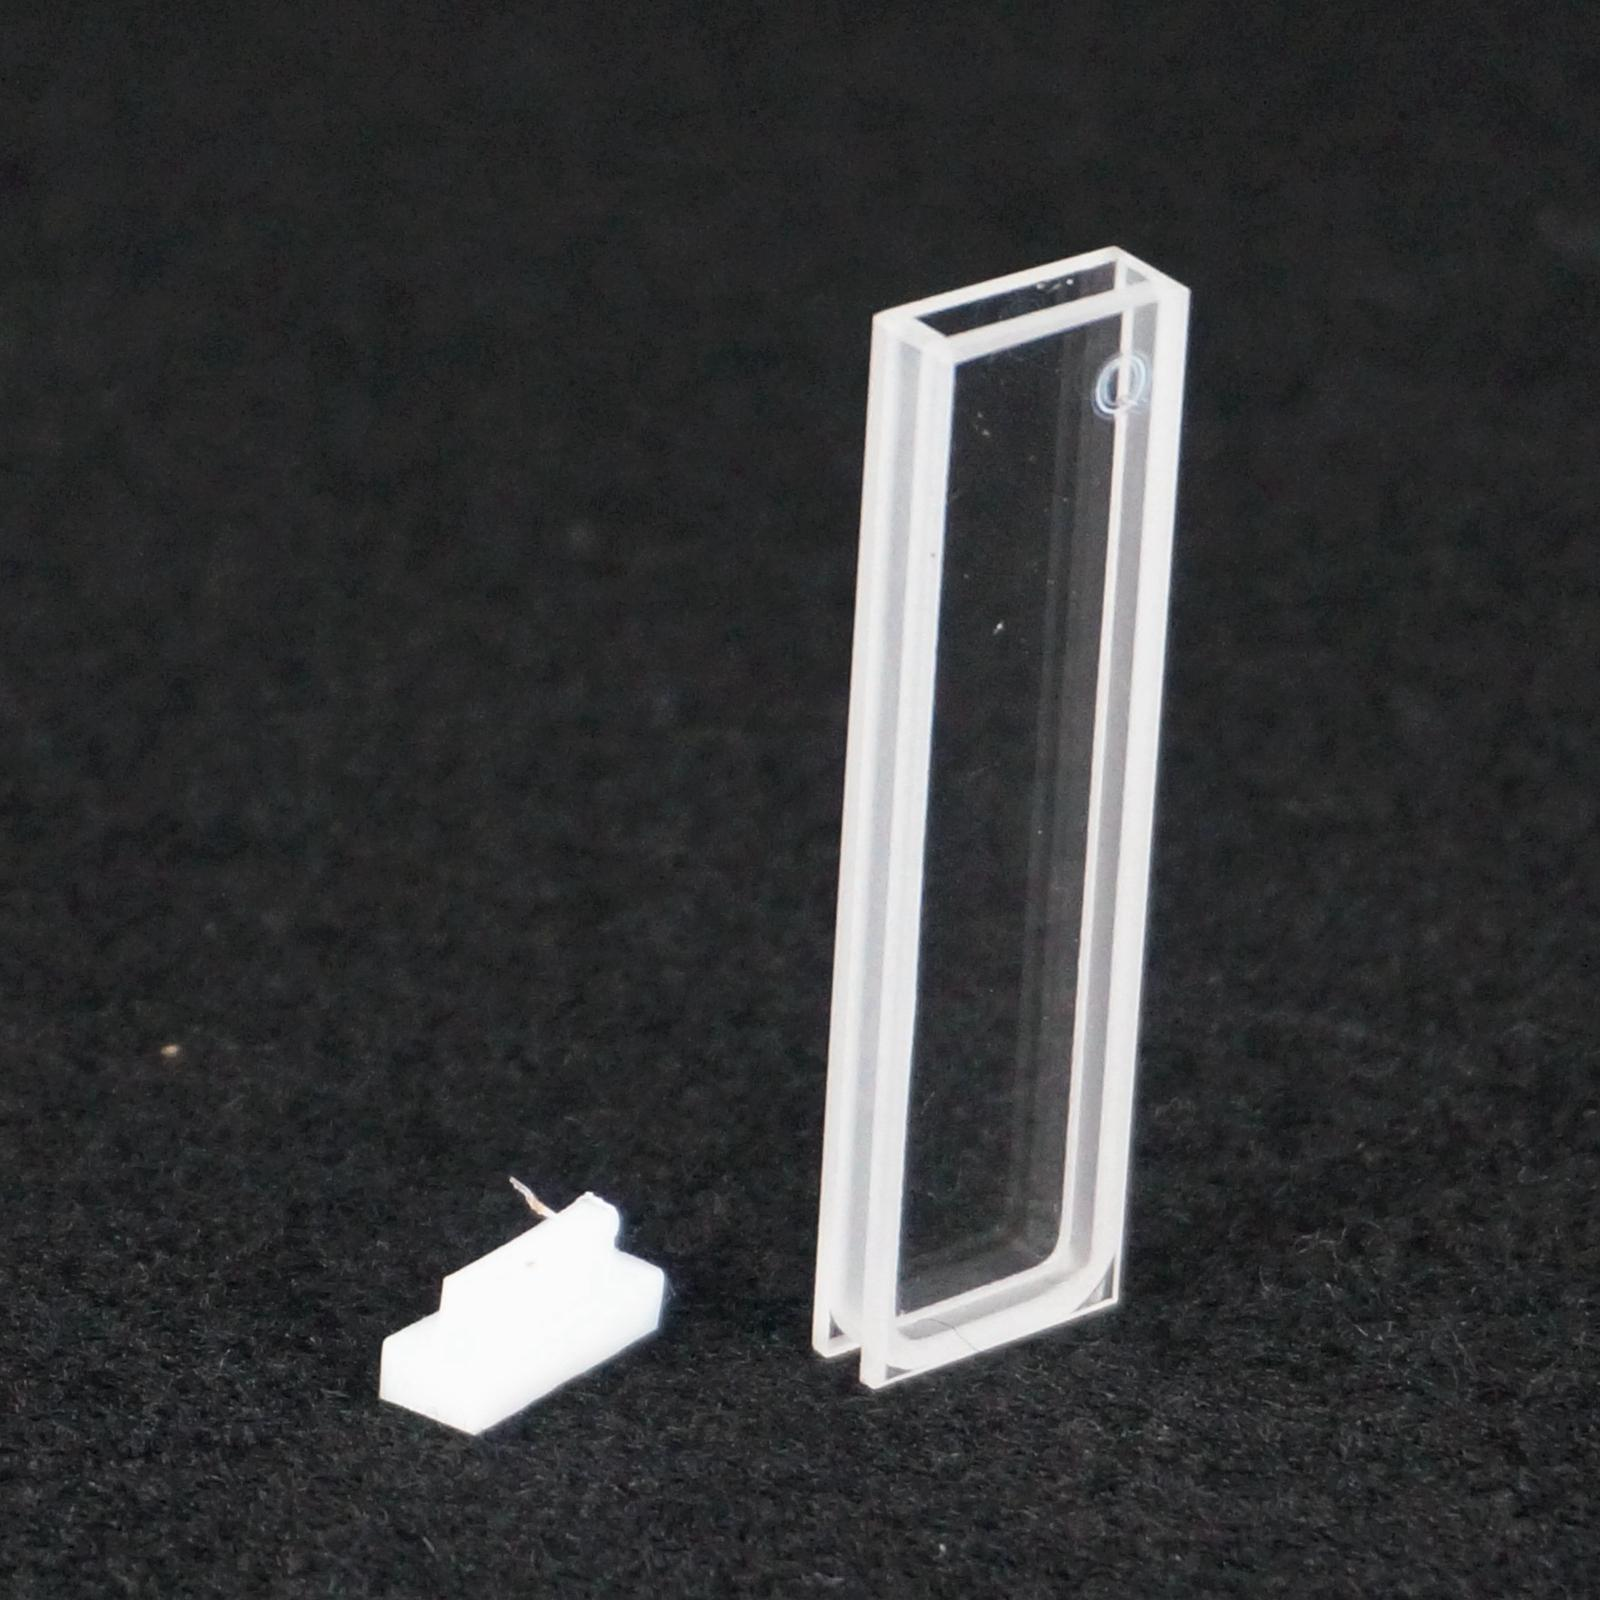 2mm Path Length JGS1 Quartz Cuvette Cell With Telfon Lid For Uv Spectrophotometers2mm Path Length JGS1 Quartz Cuvette Cell With Telfon Lid For Uv Spectrophotometers